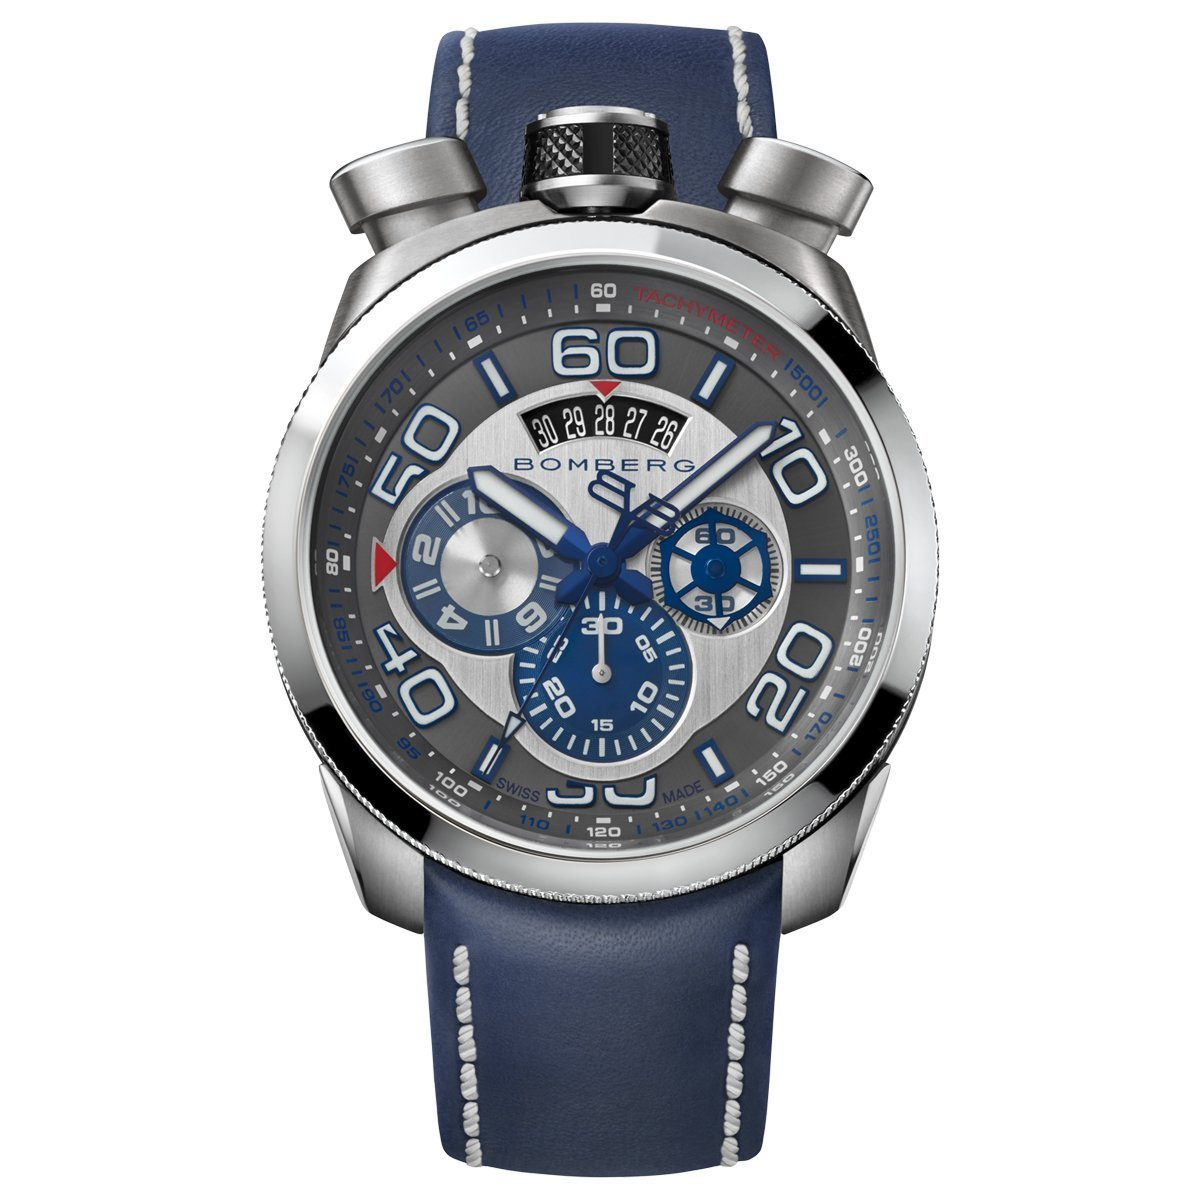 Bomberg BOLT-68 Chronograph Blue